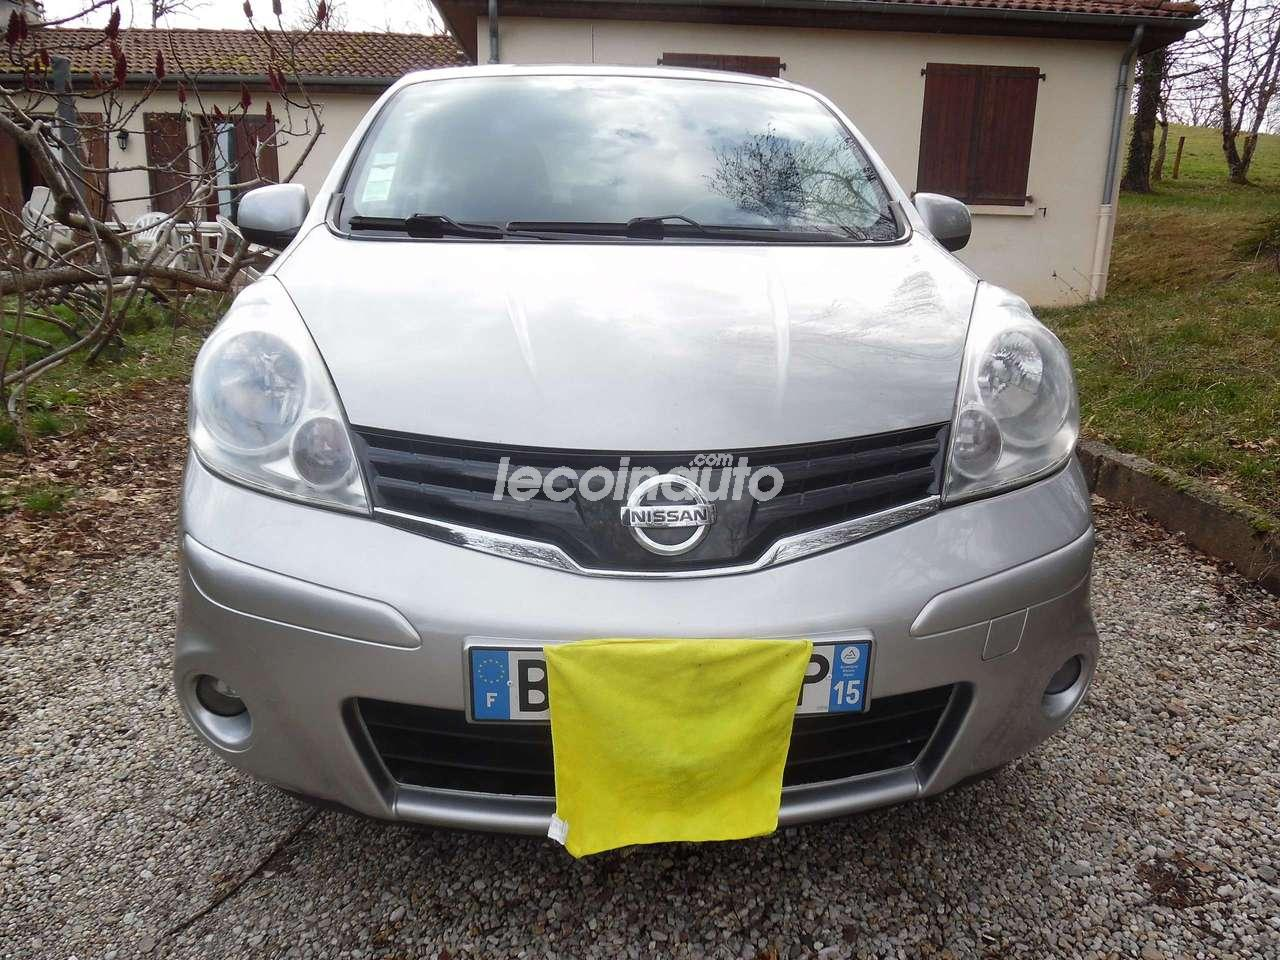 Nissan Note 1.5 dCi 86 ch Euro IV Life